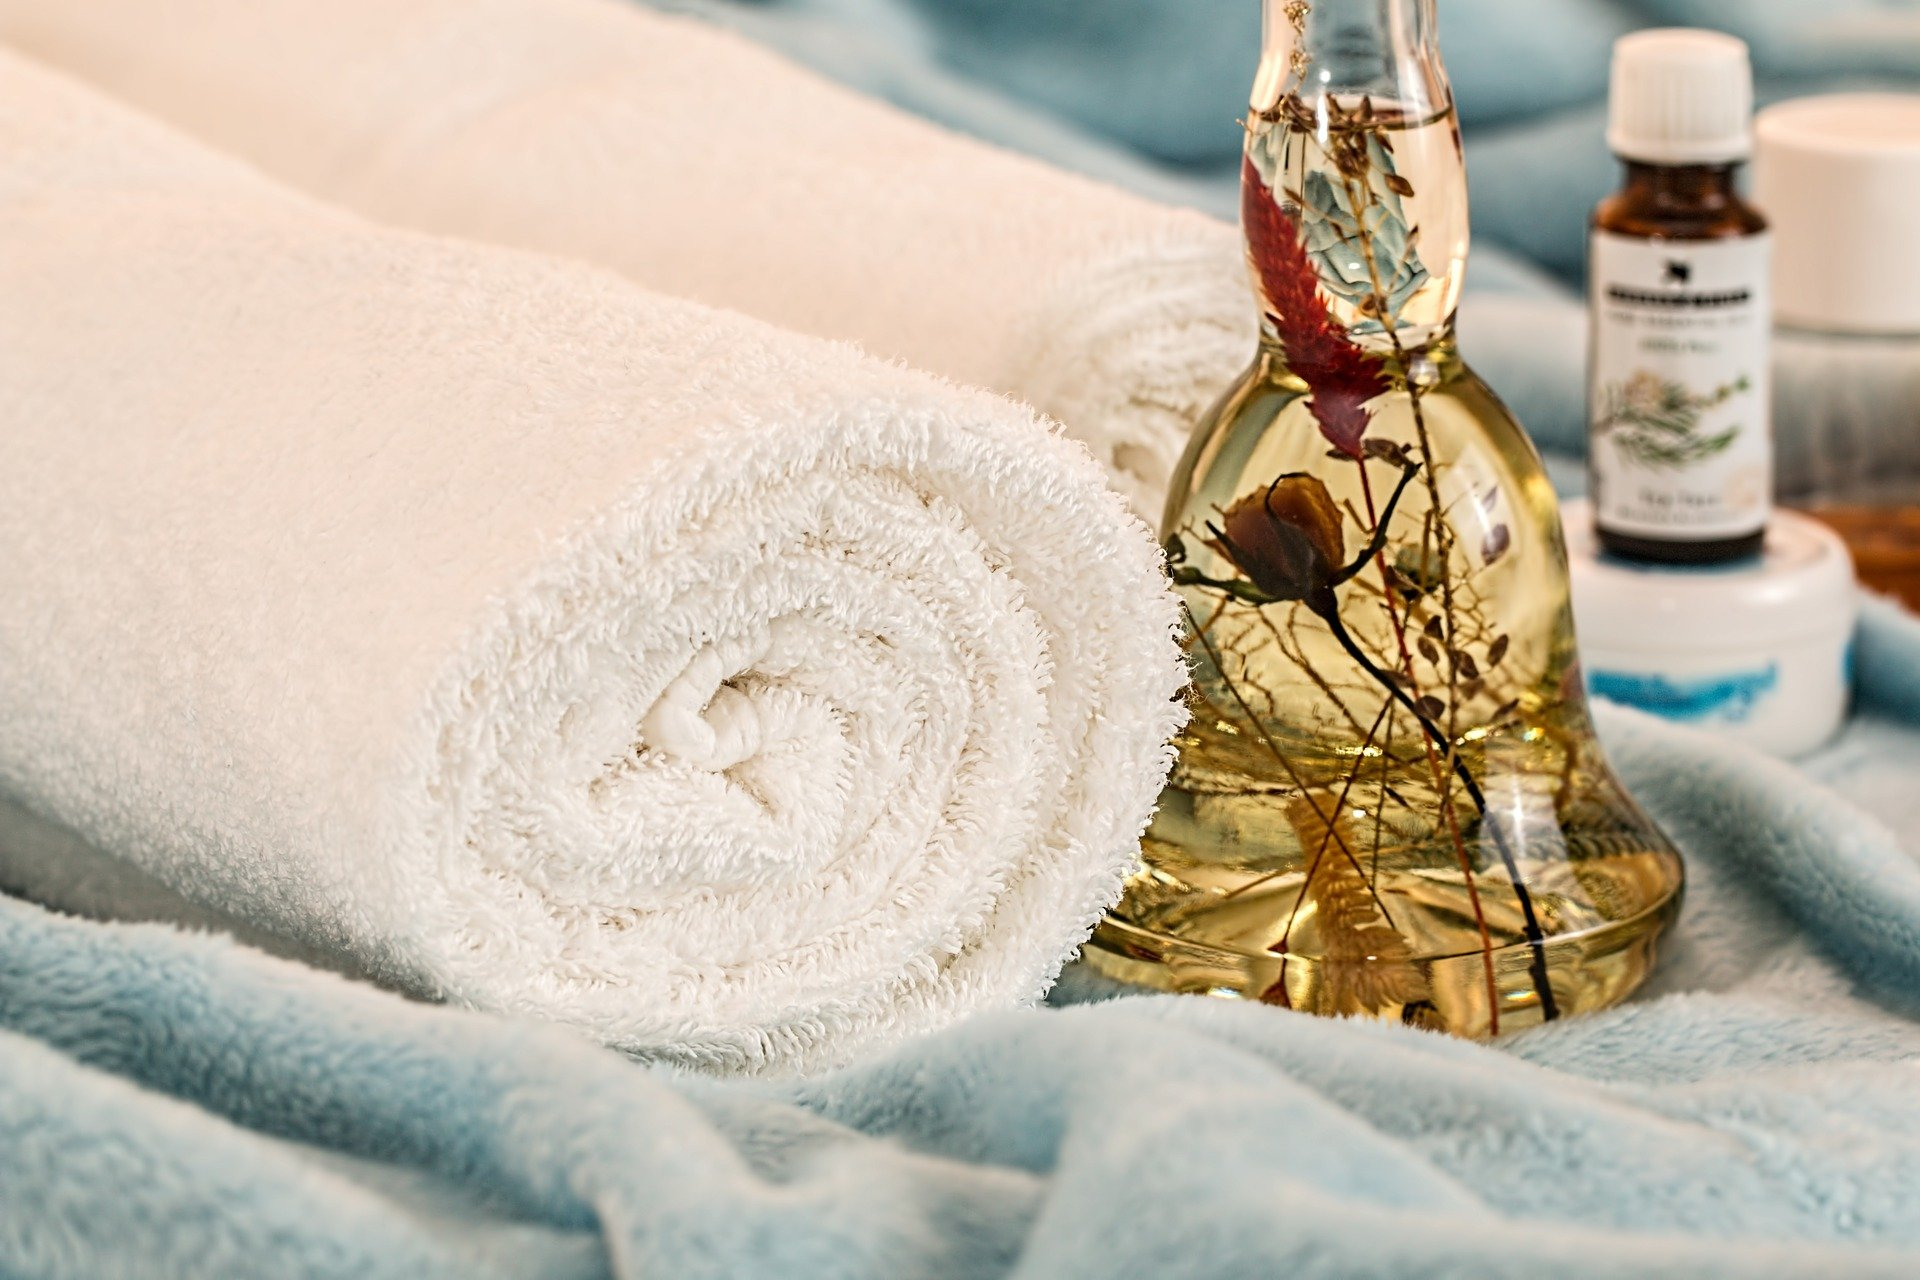 Why Should You Consider a Resort with a Spa for Vacation?